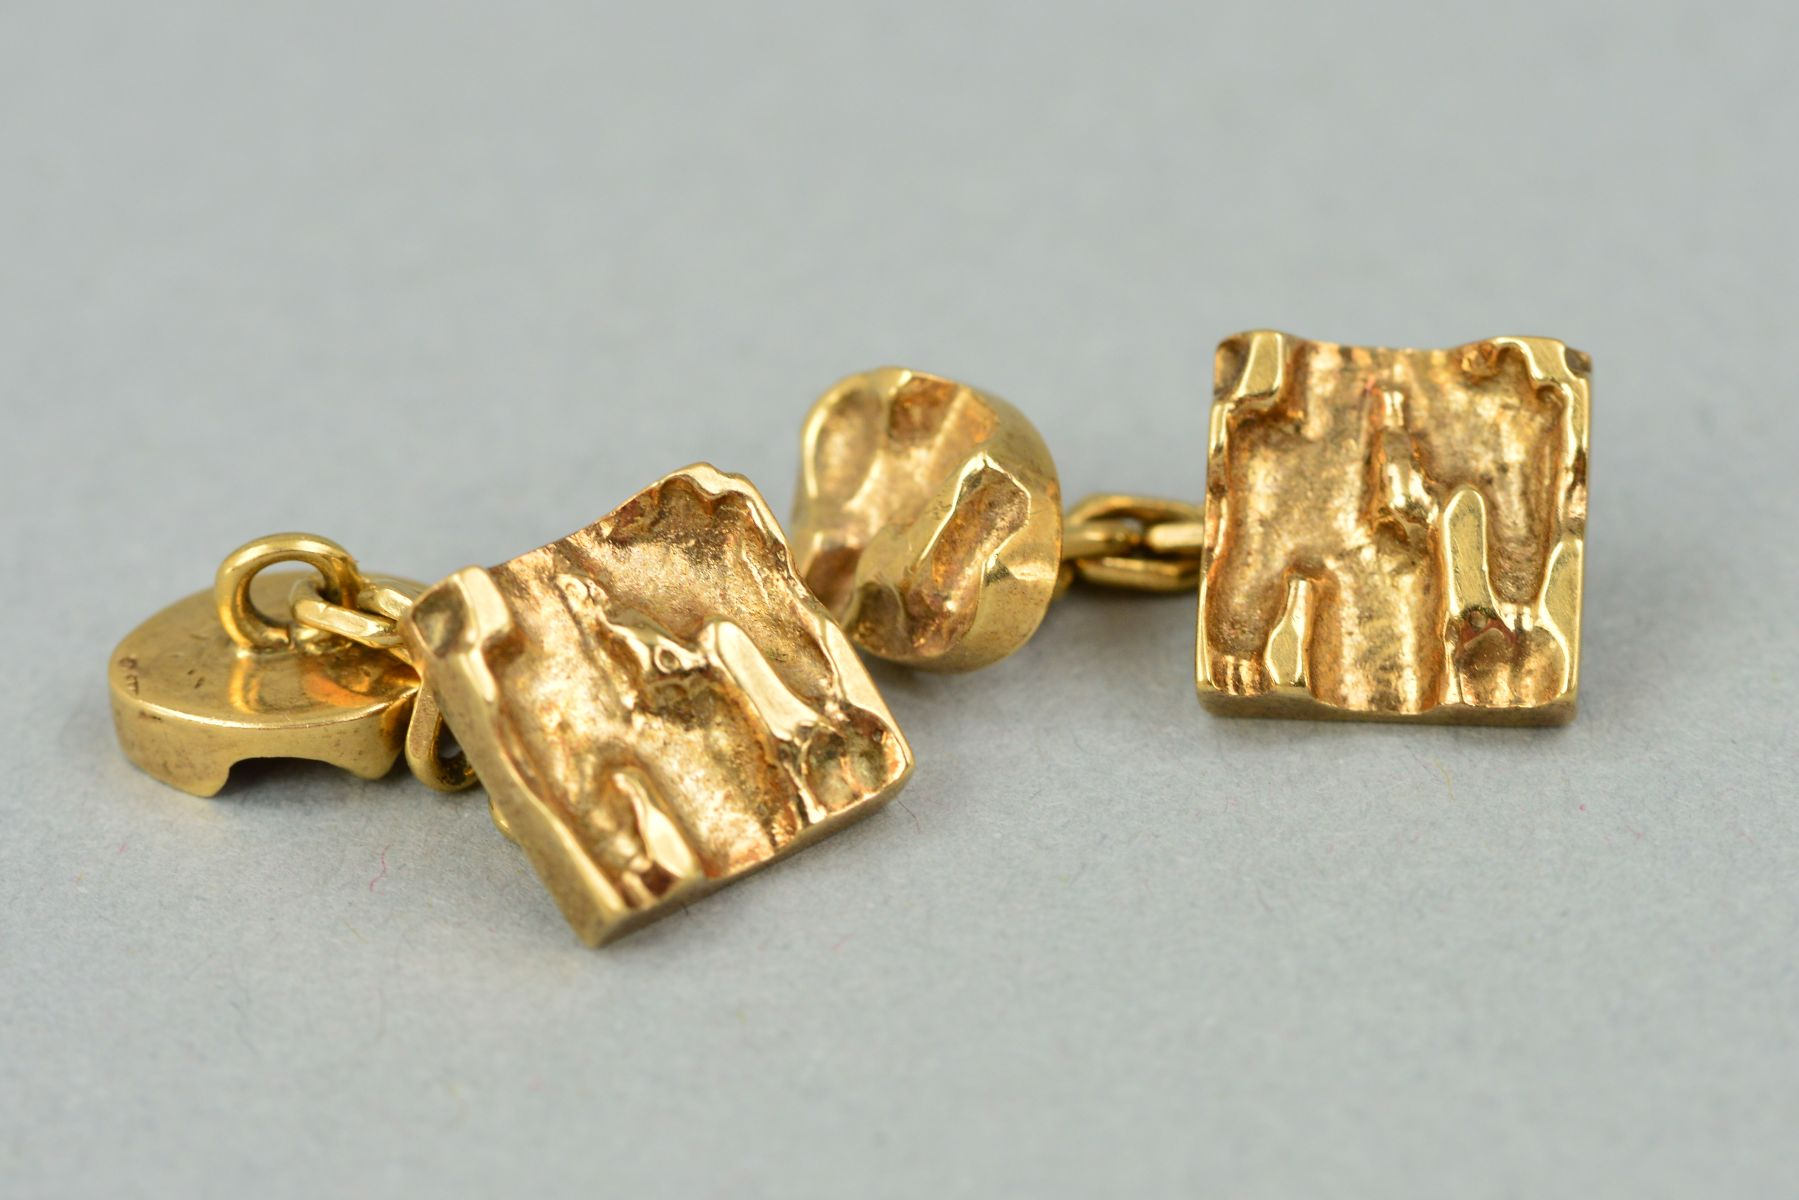 Lot 40 - A PAIR OF MID TO LATE 20TH CENTURY 9CT GOLD CUFFLINKS, abstract heavy carved design, chain